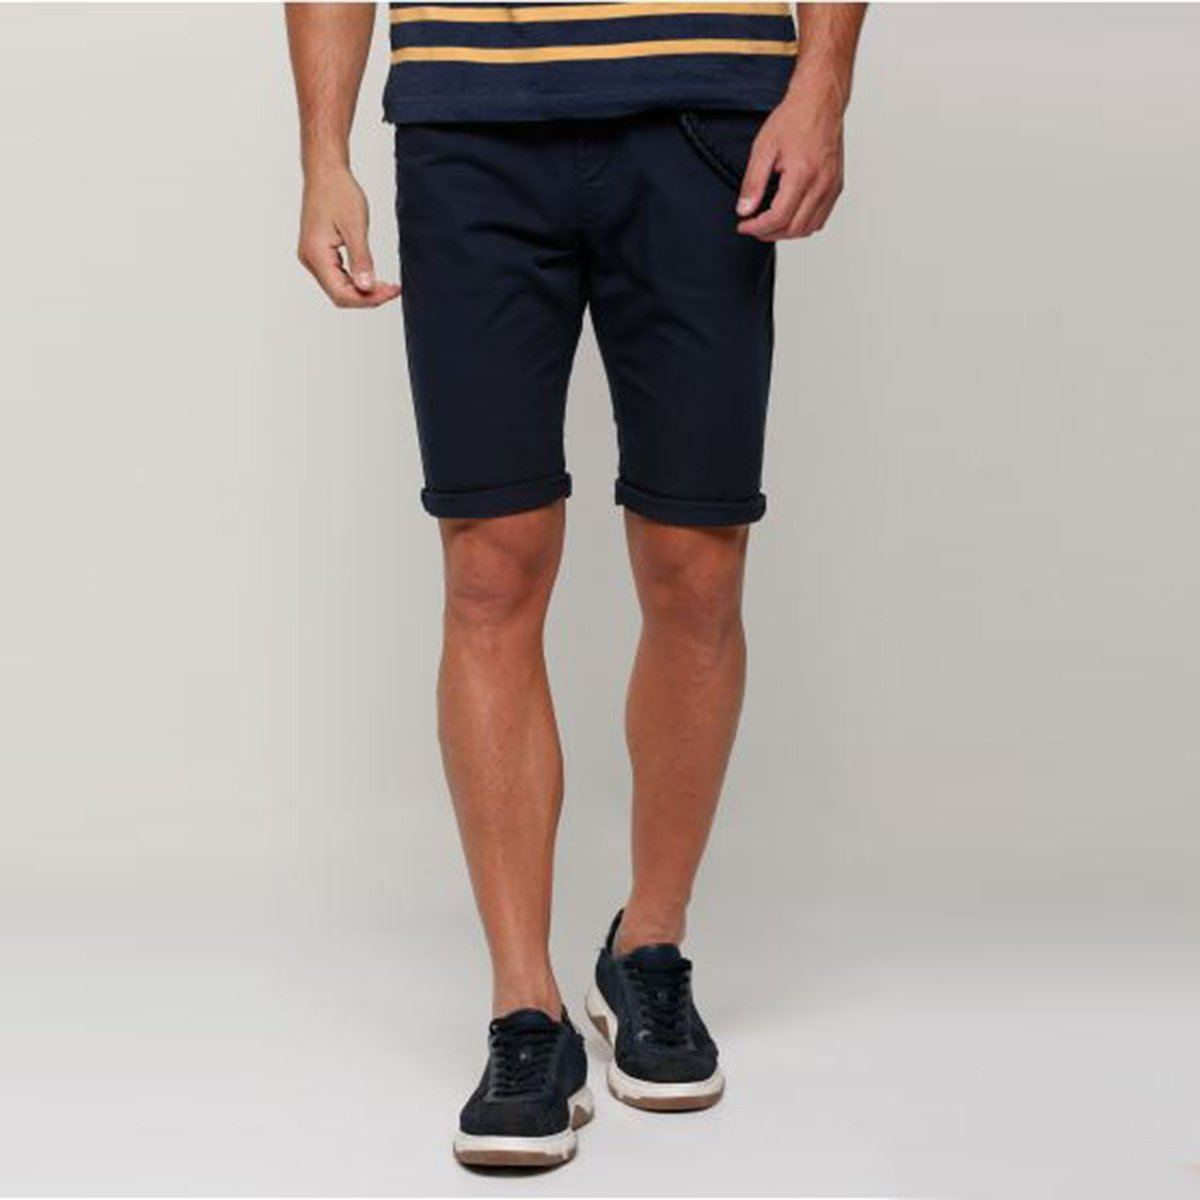 SPL-navy pocket detail cotton shorts with button closure